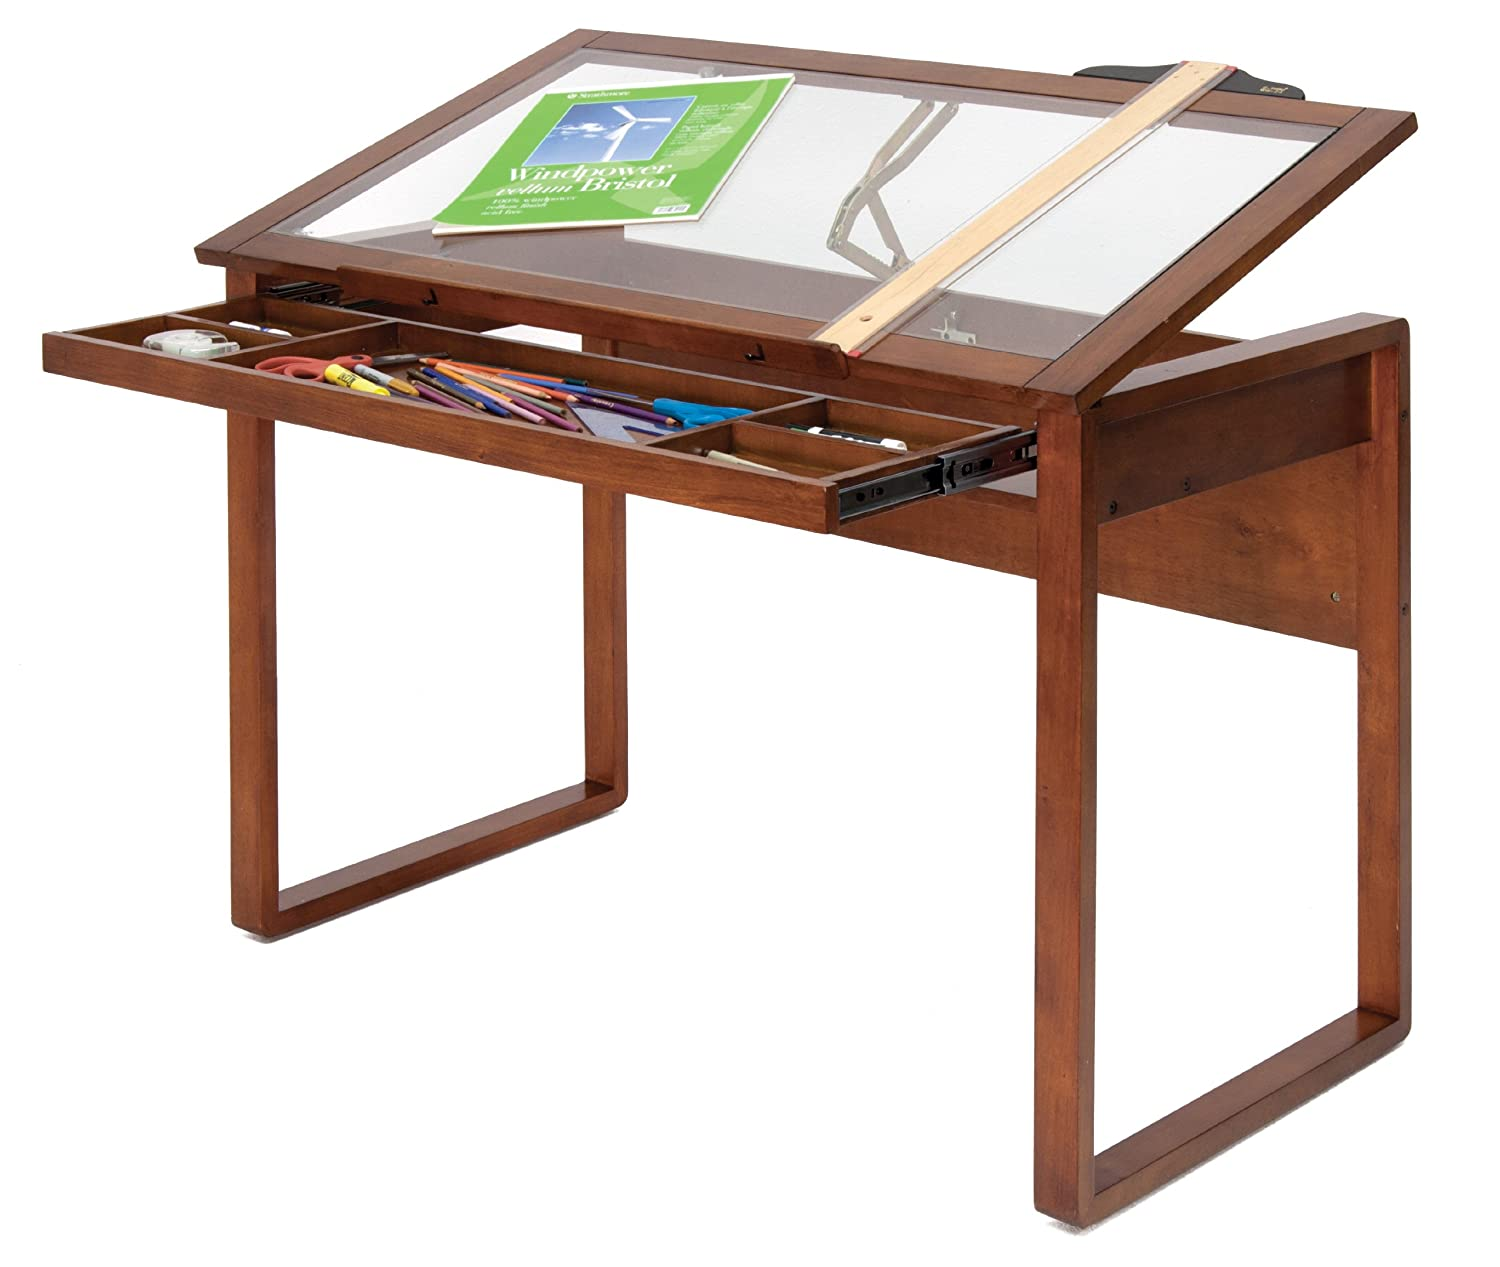 Studio Designs Ponderosa Table, Glass/Wood, Brown: Amazon.co.uk ... for Drawing Table With Light  199fiz